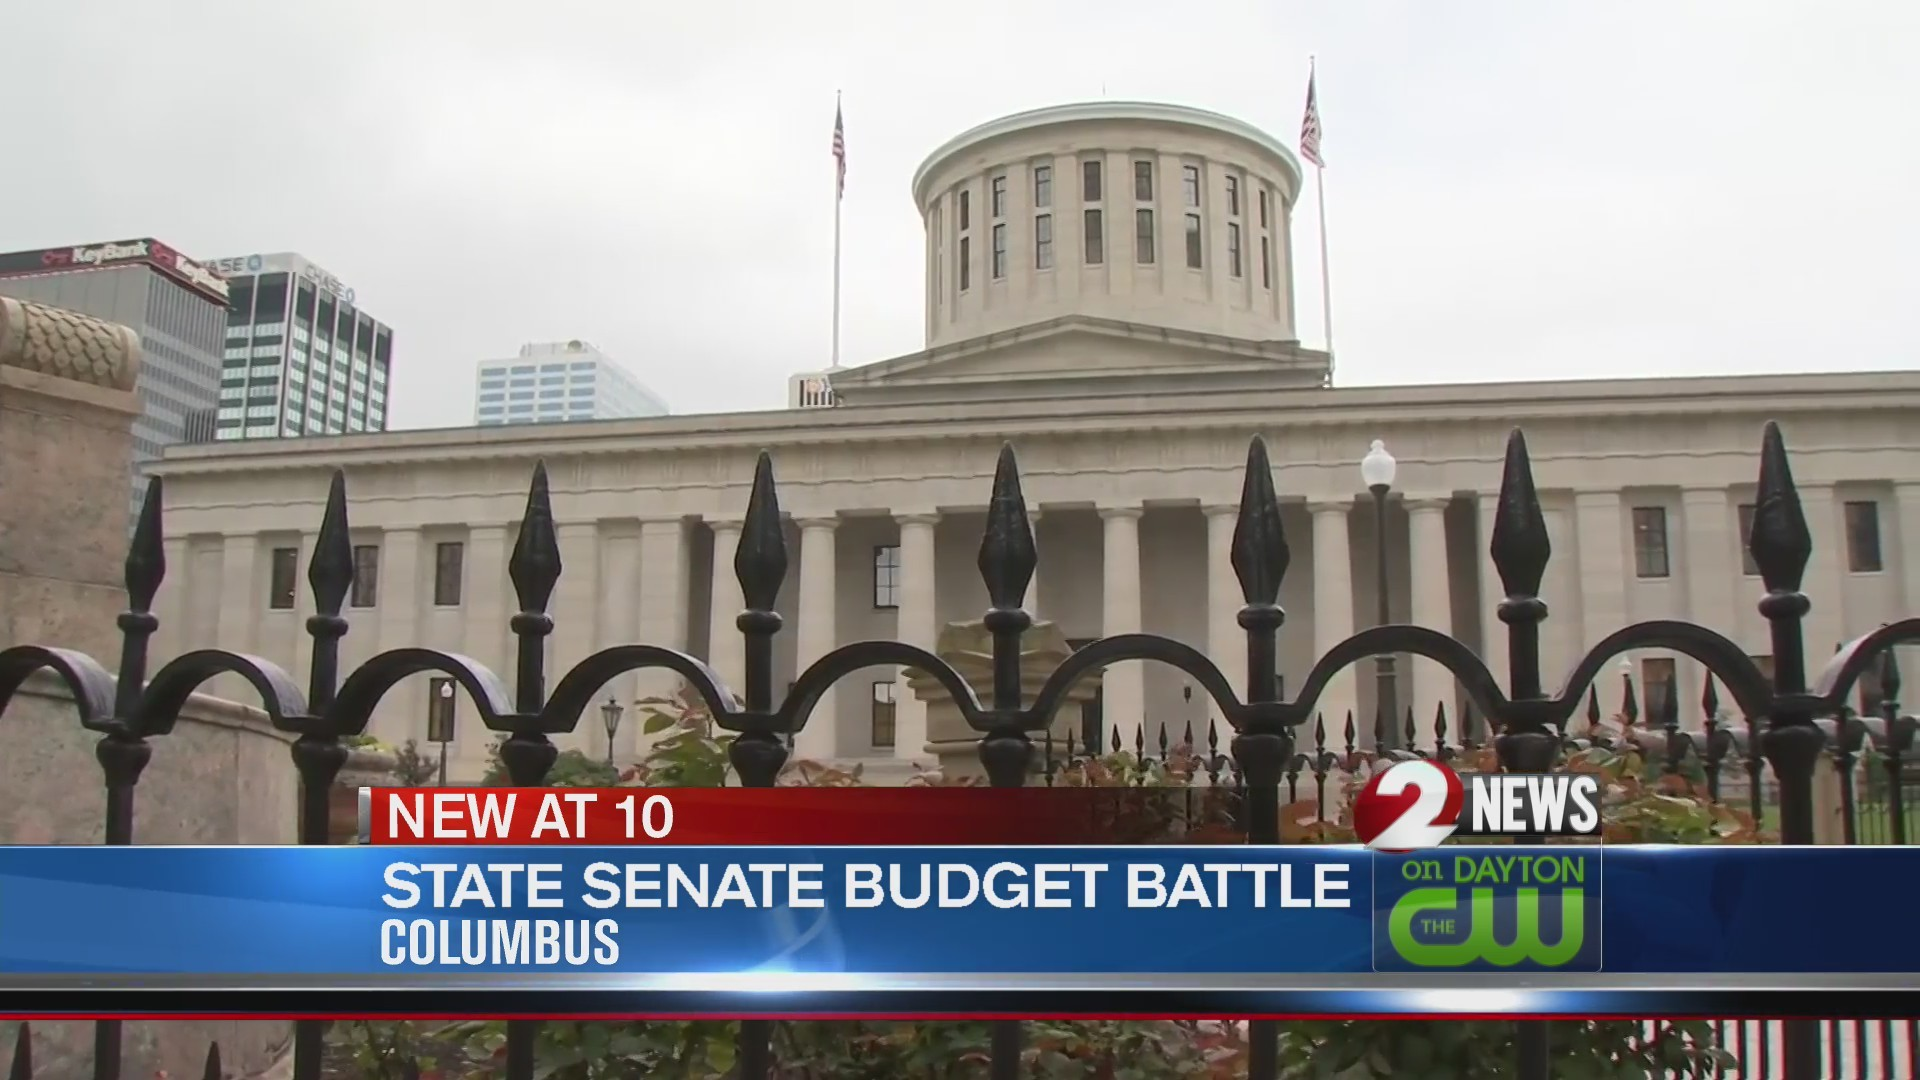 State Senate budget battle